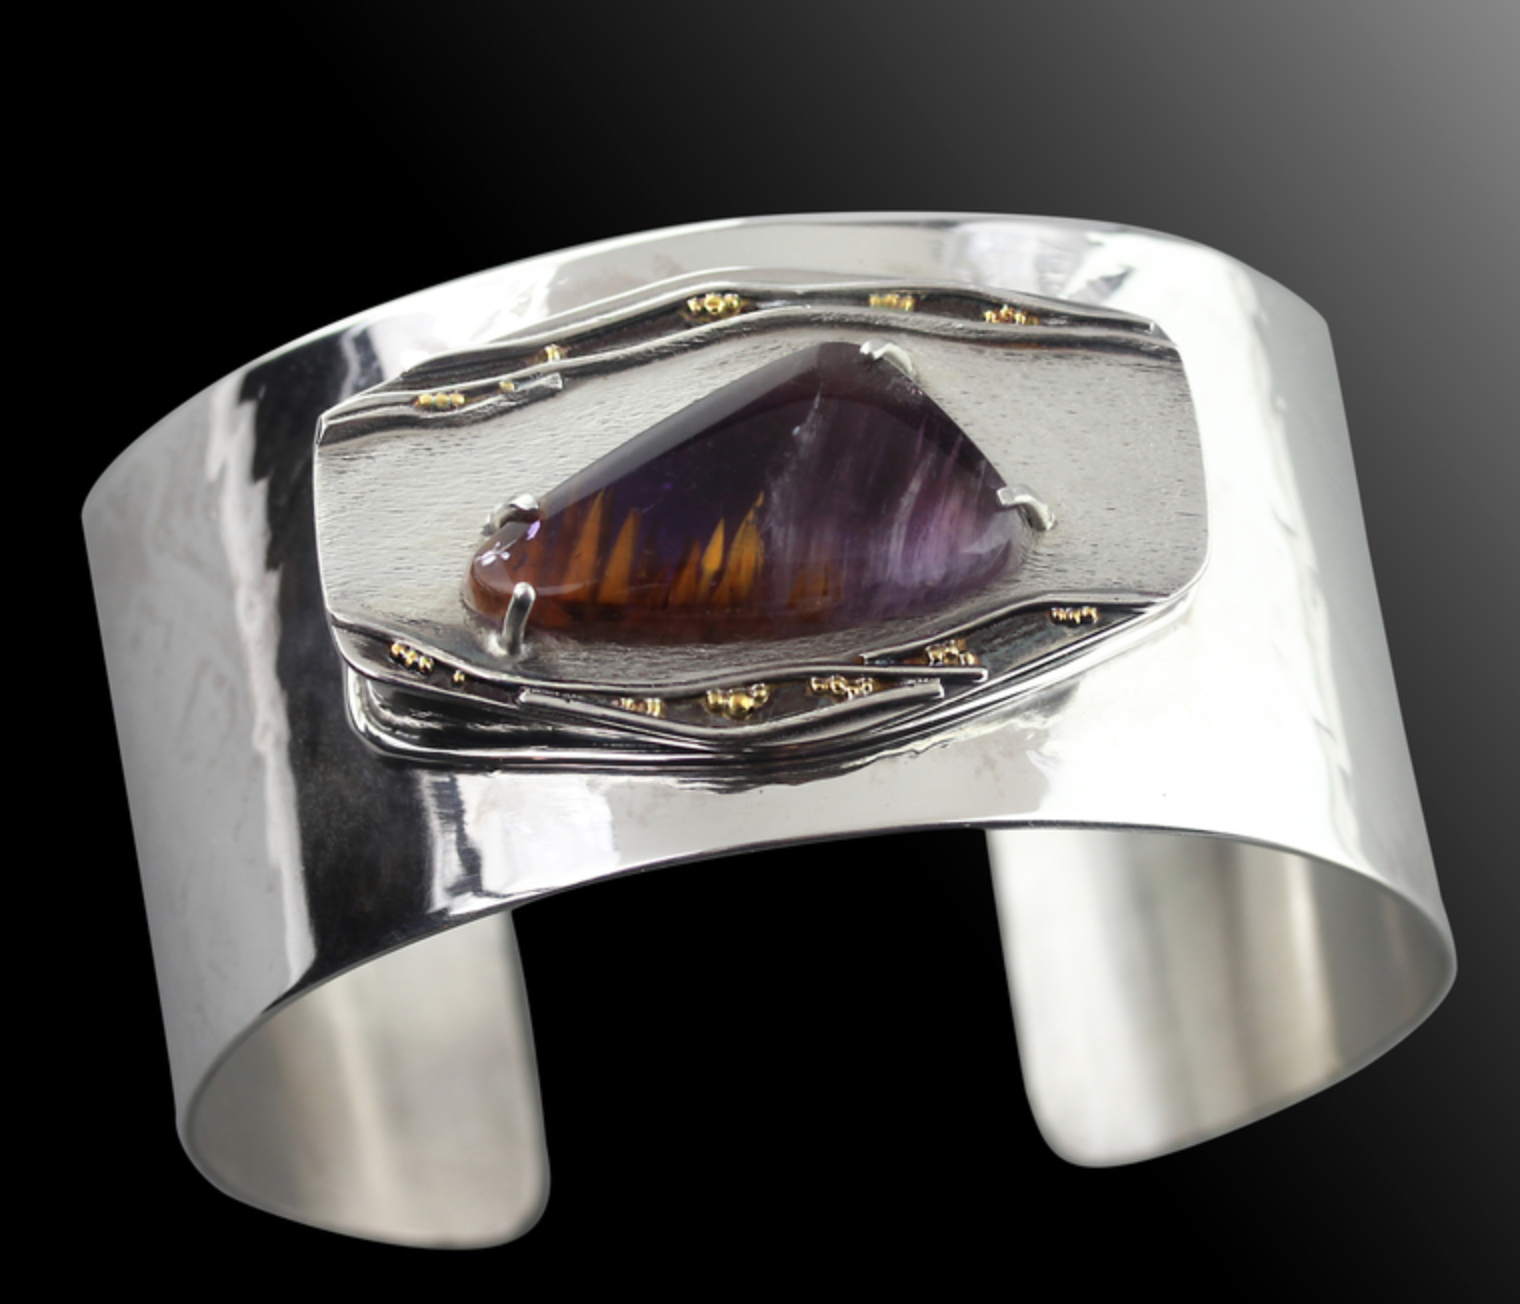 Janet Alexander - http://janetalexander.netI create handcrafted by combining unusual stones with complimentary textures, and metals creating contemporary distinctive jewelry designs. I work in sterling silver, fine silver, 14kgold or 22k gold.